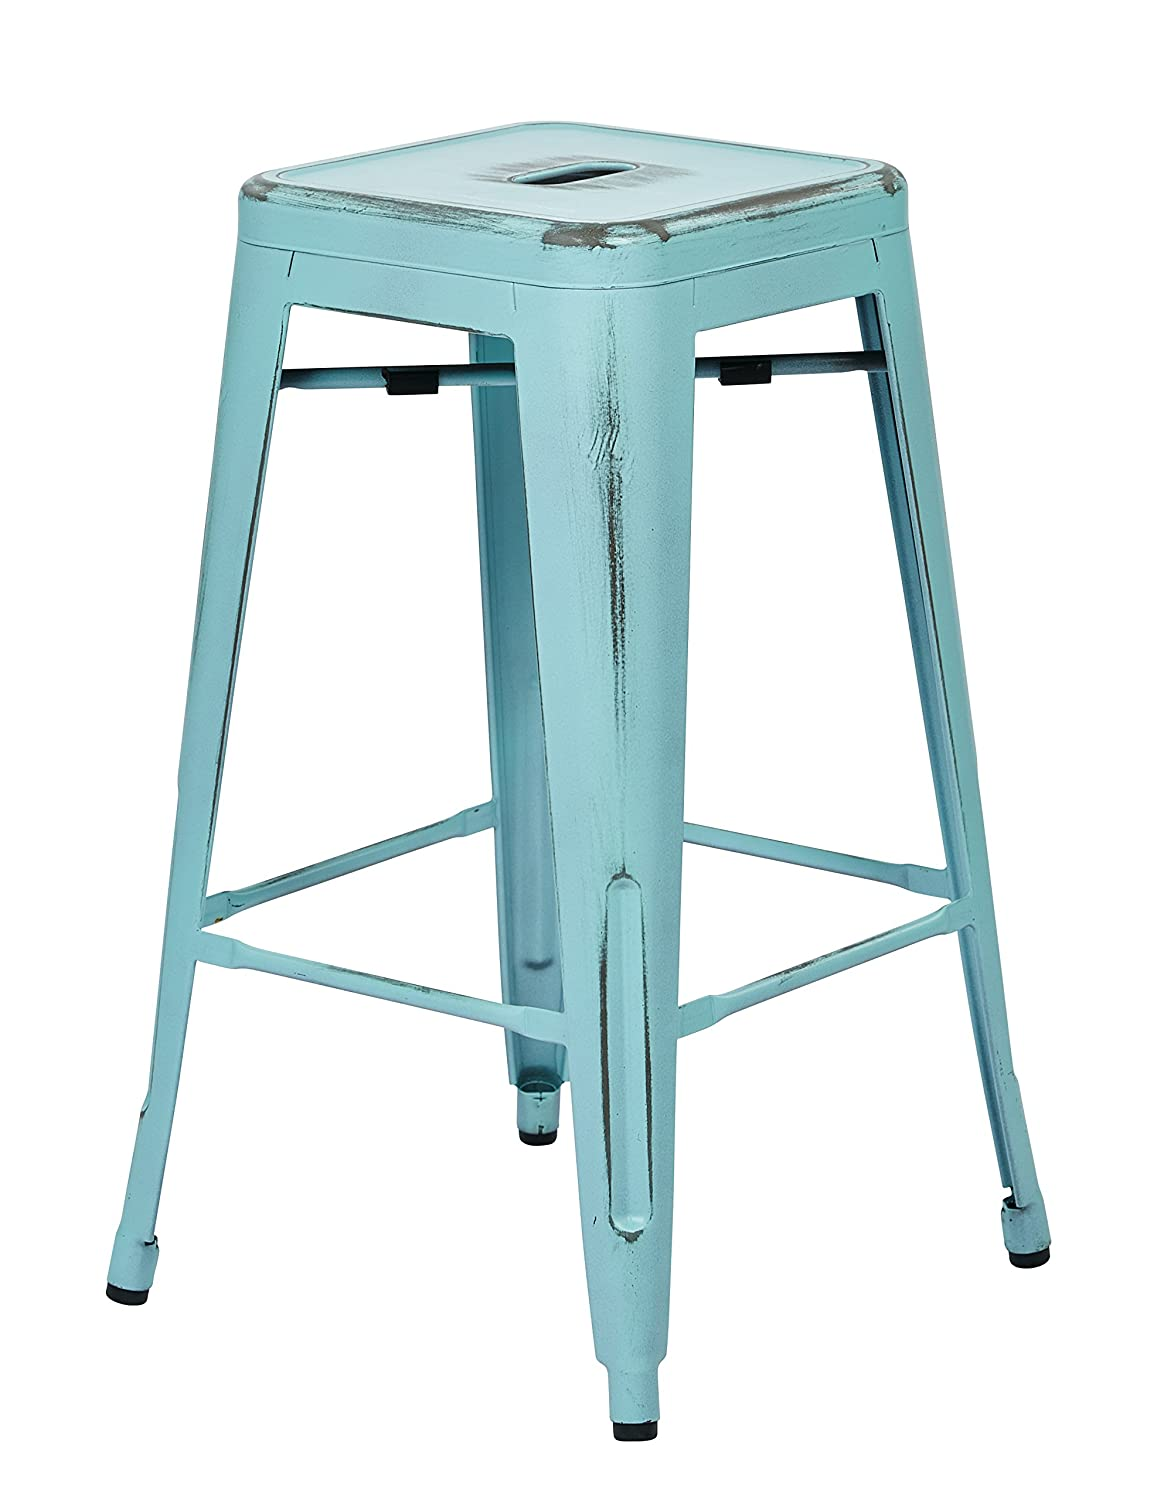 Amazon.com Office Star Bristow Antique Metal Barstool 26-Inch Antique Sky Blue 4-Pack Kitchen u0026 Dining  sc 1 st  Amazon.com & Amazon.com: Office Star Bristow Antique Metal Barstool 26-Inch ... islam-shia.org